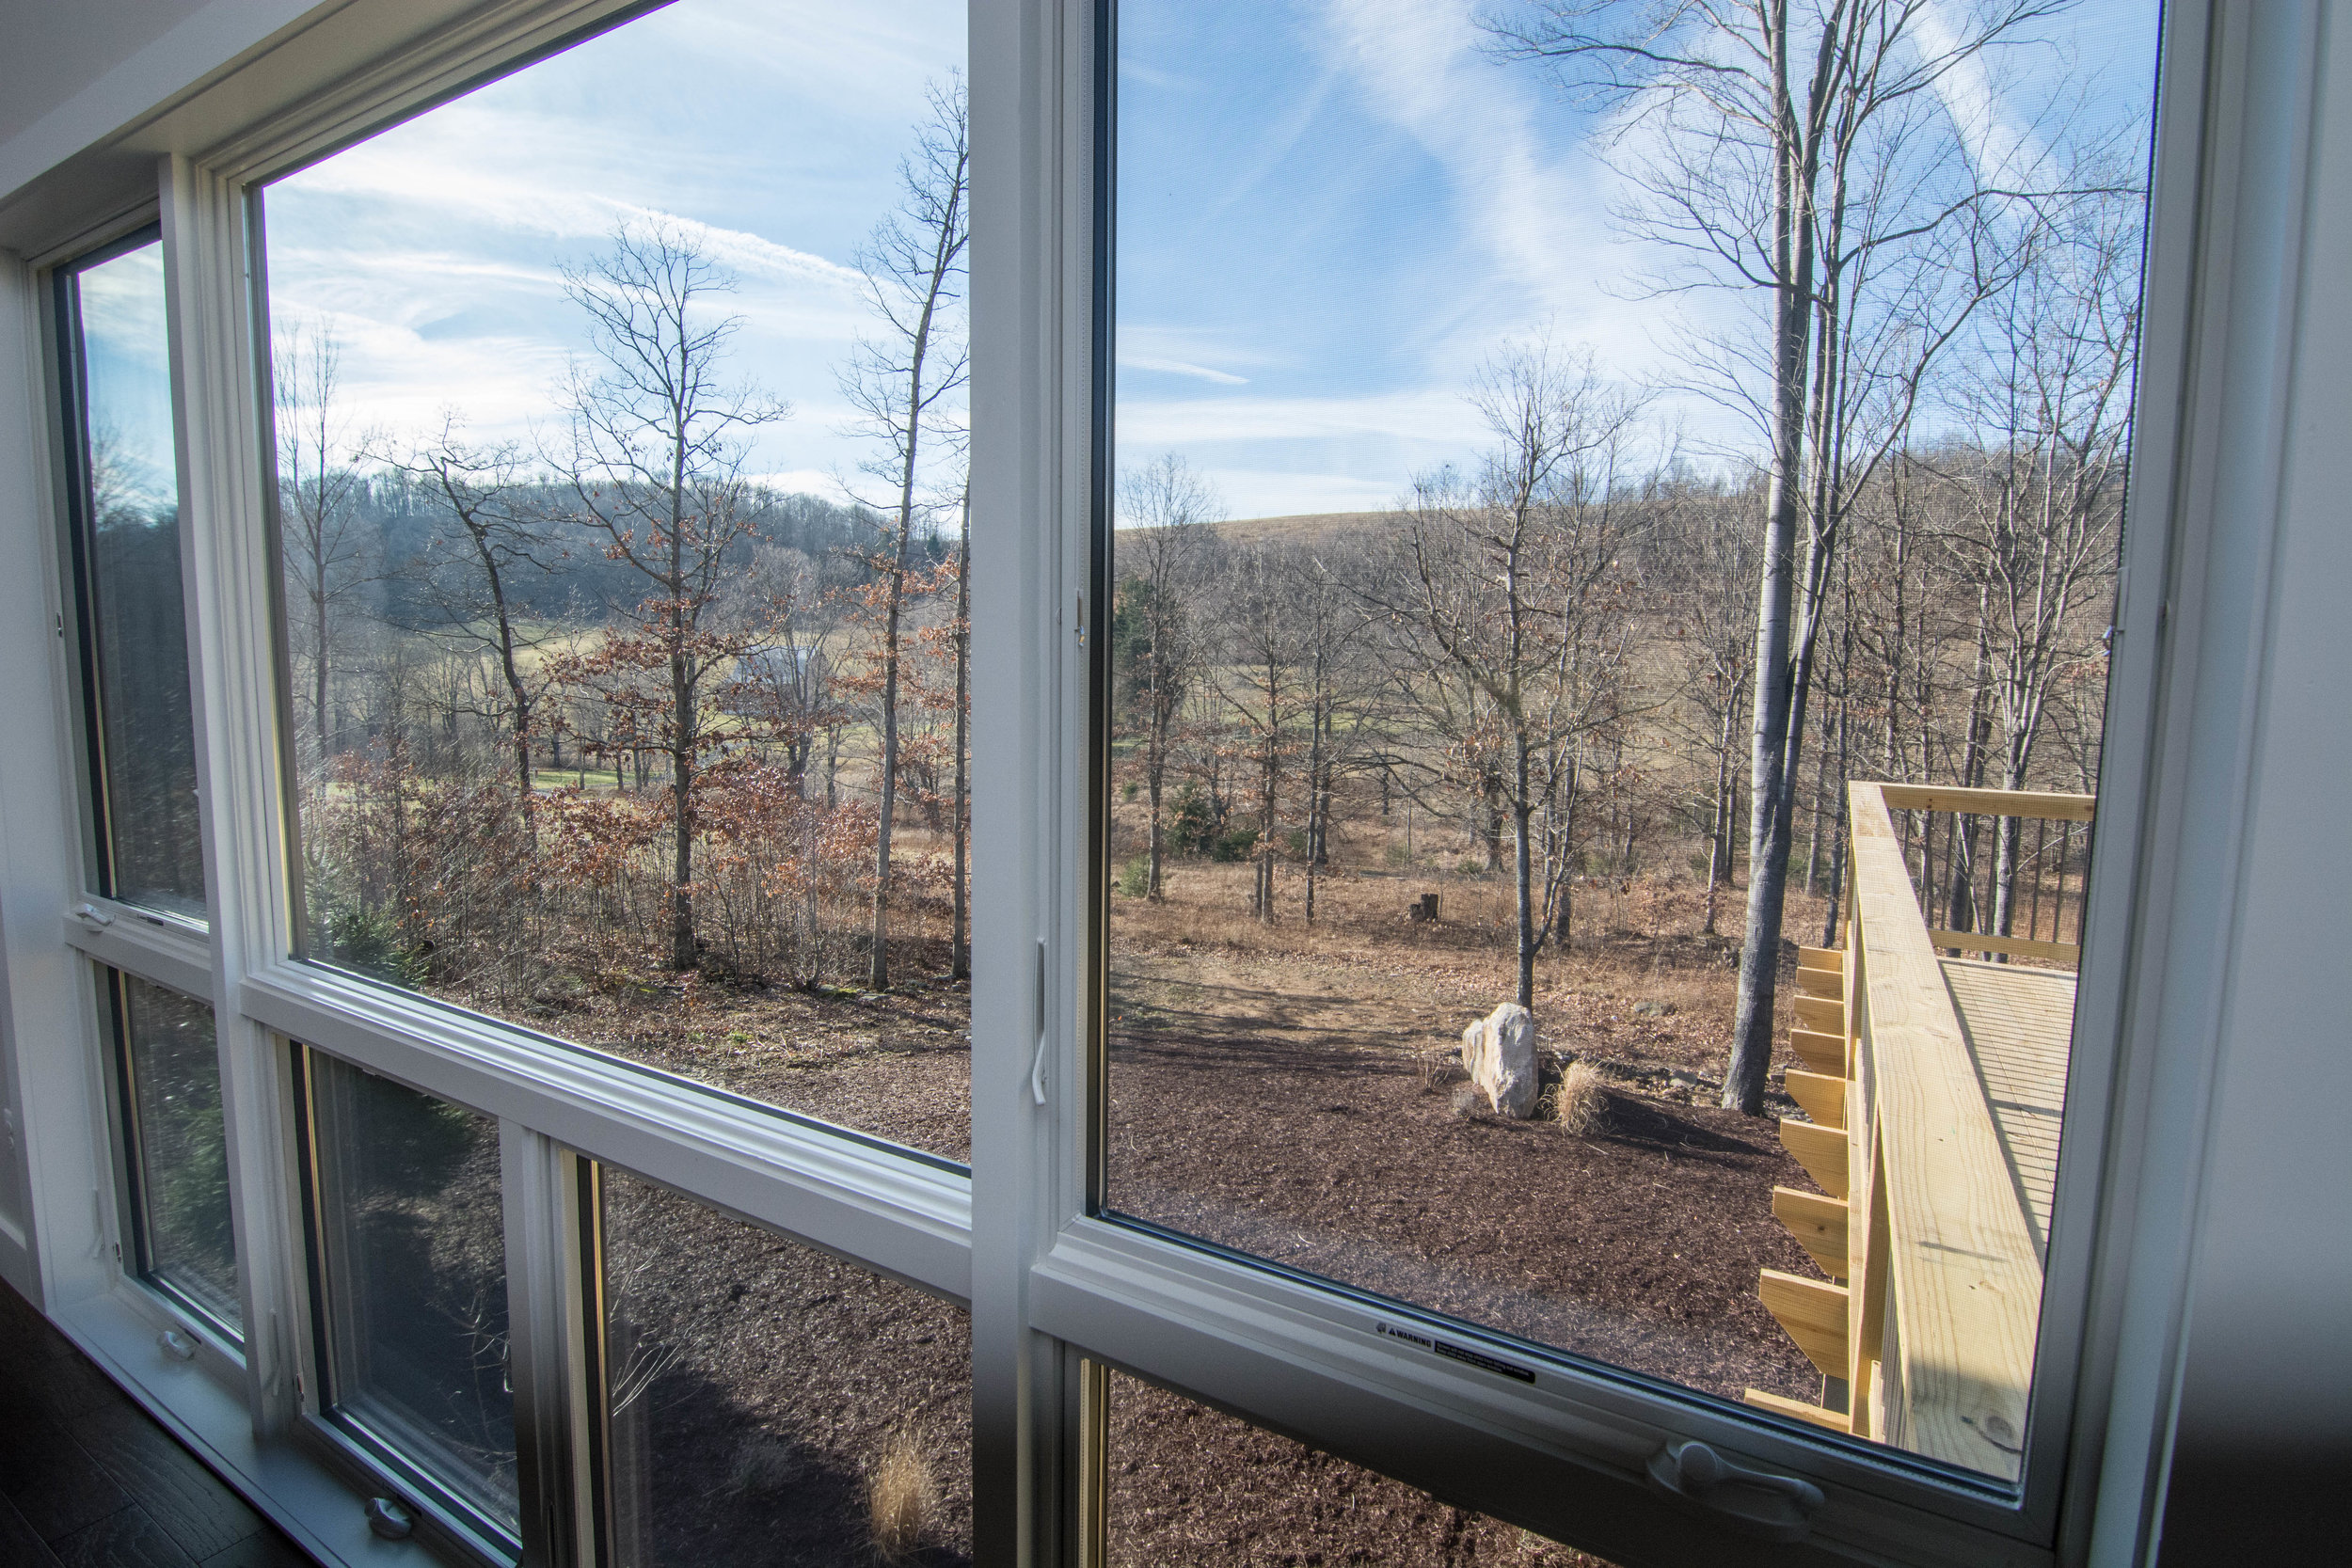 gosnell_builders_home_for_sale_ridgeview_valley03.jpg